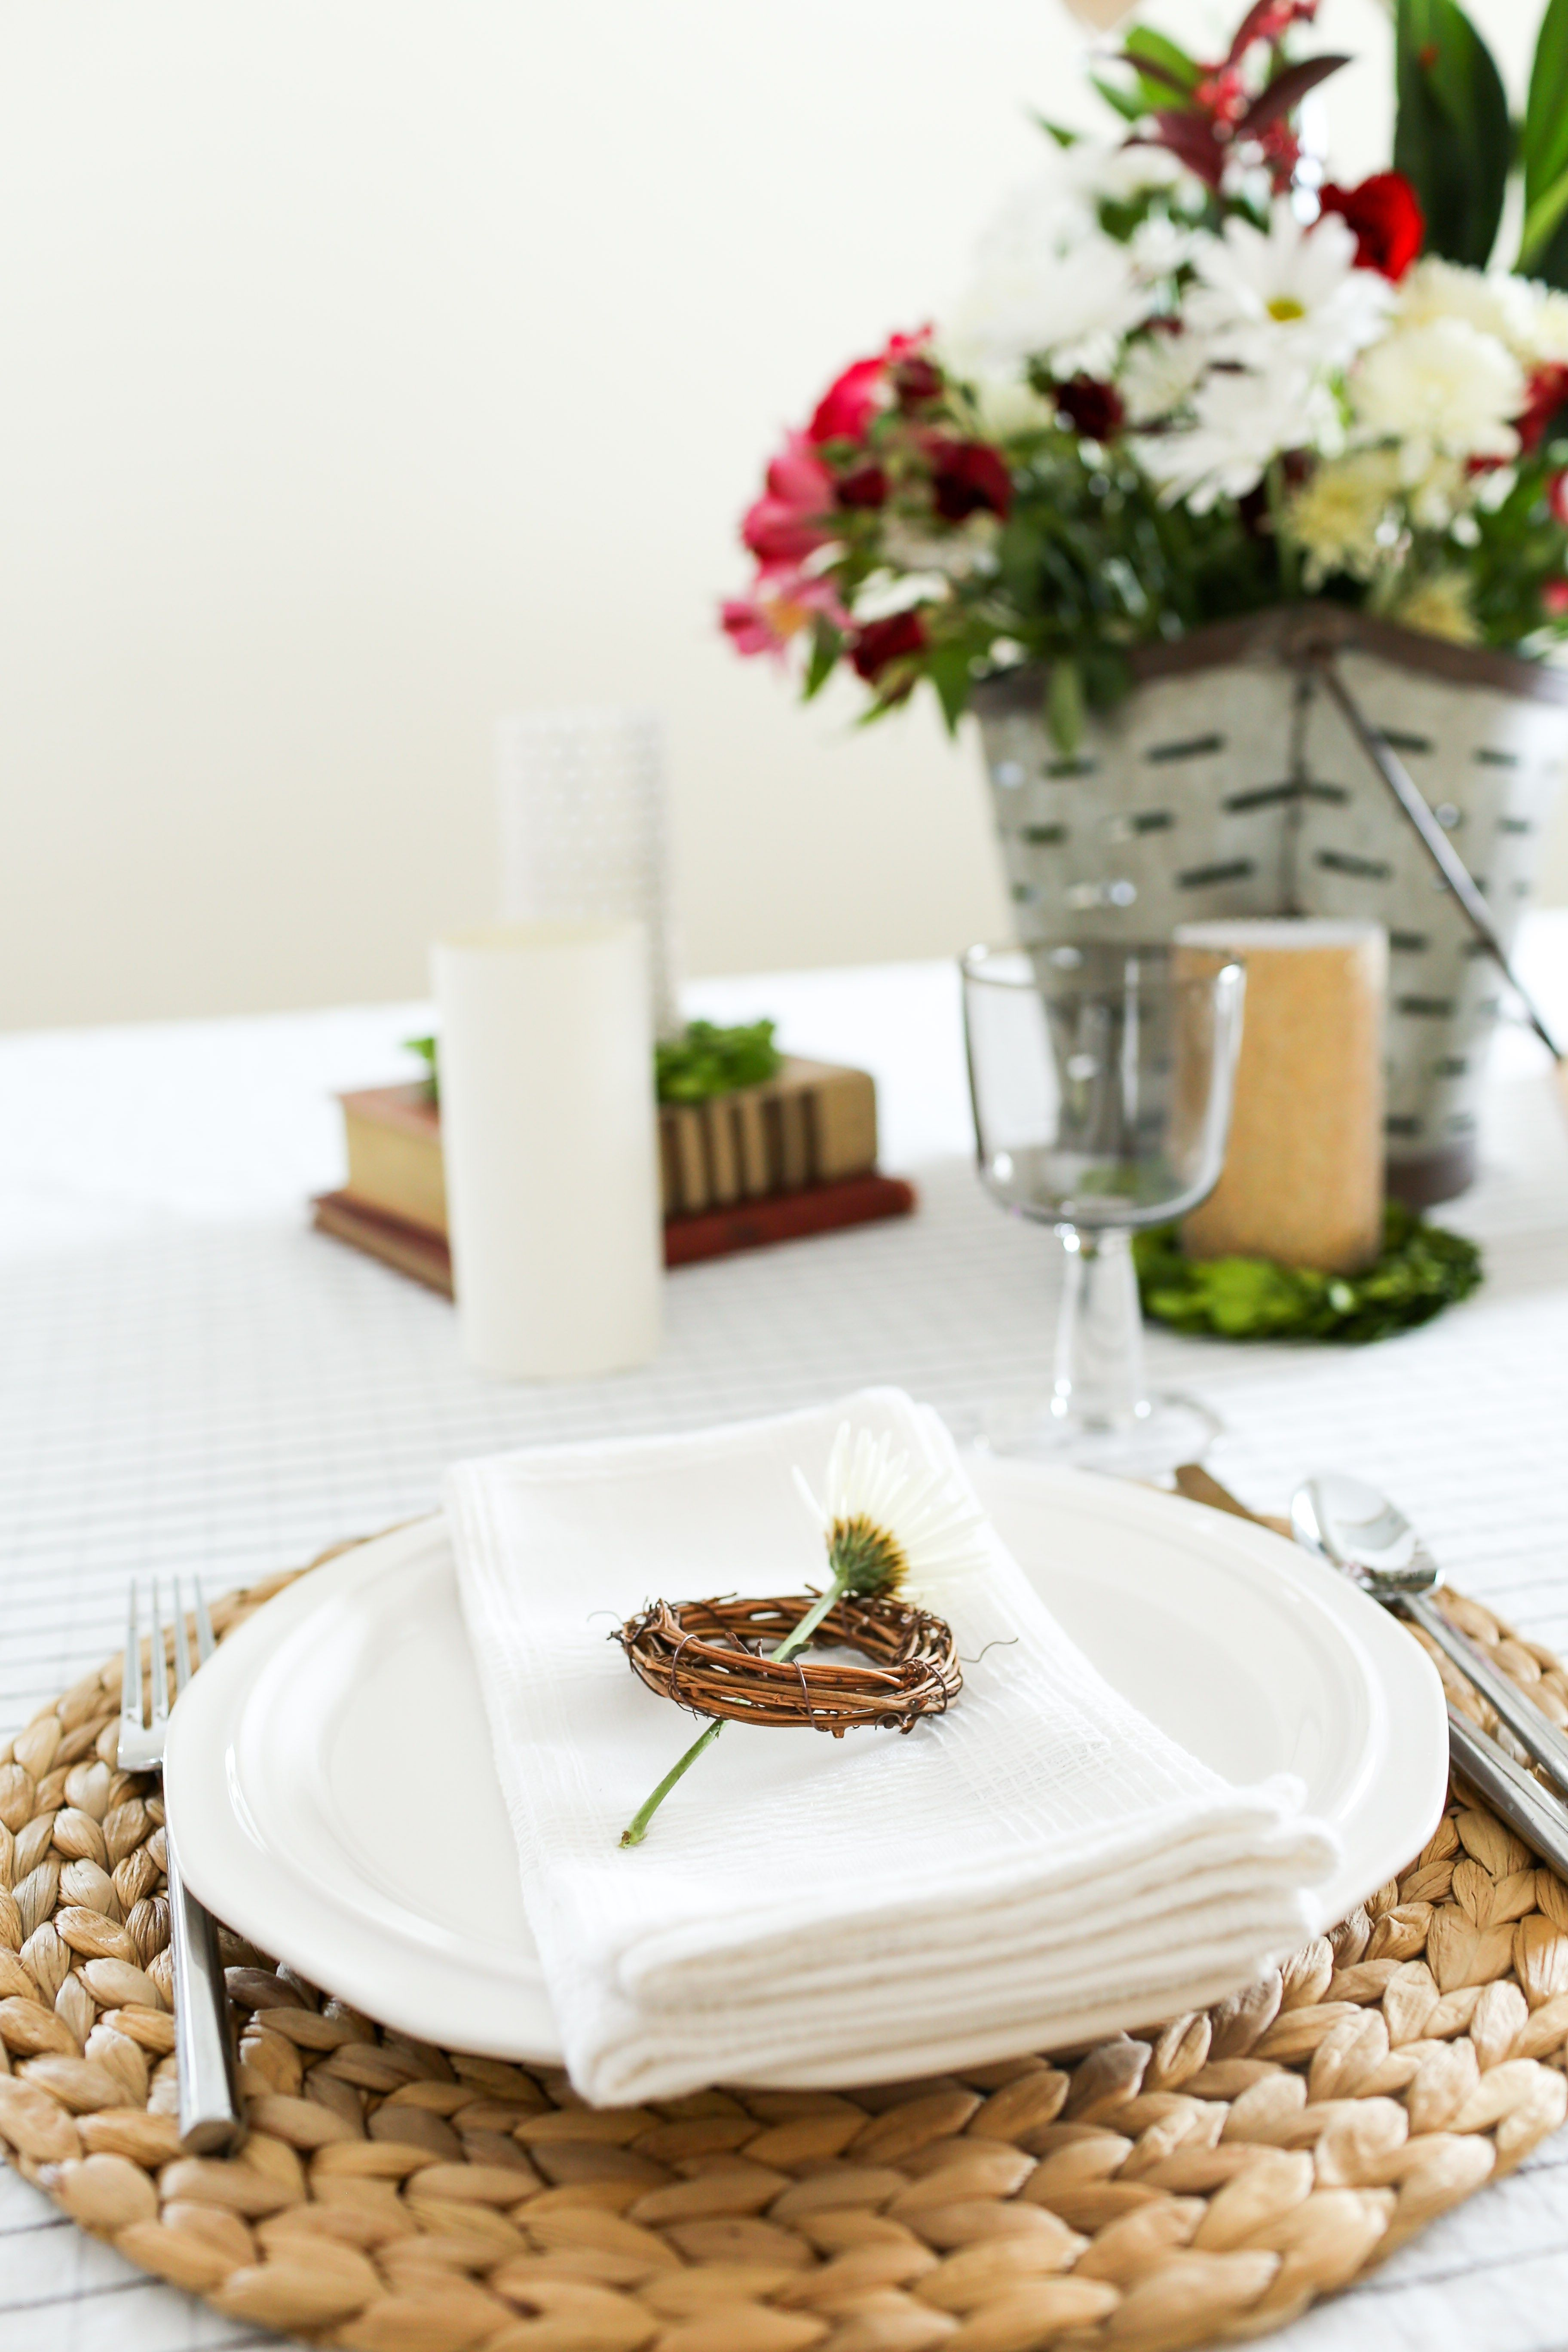 Daisy and grapevine wreath used in table setting. | Vintage table setting. | thedempsterlogbook  sc 1 st  Pinterest & Daisy and grapevine wreath used in table setting. | Vintage table ...